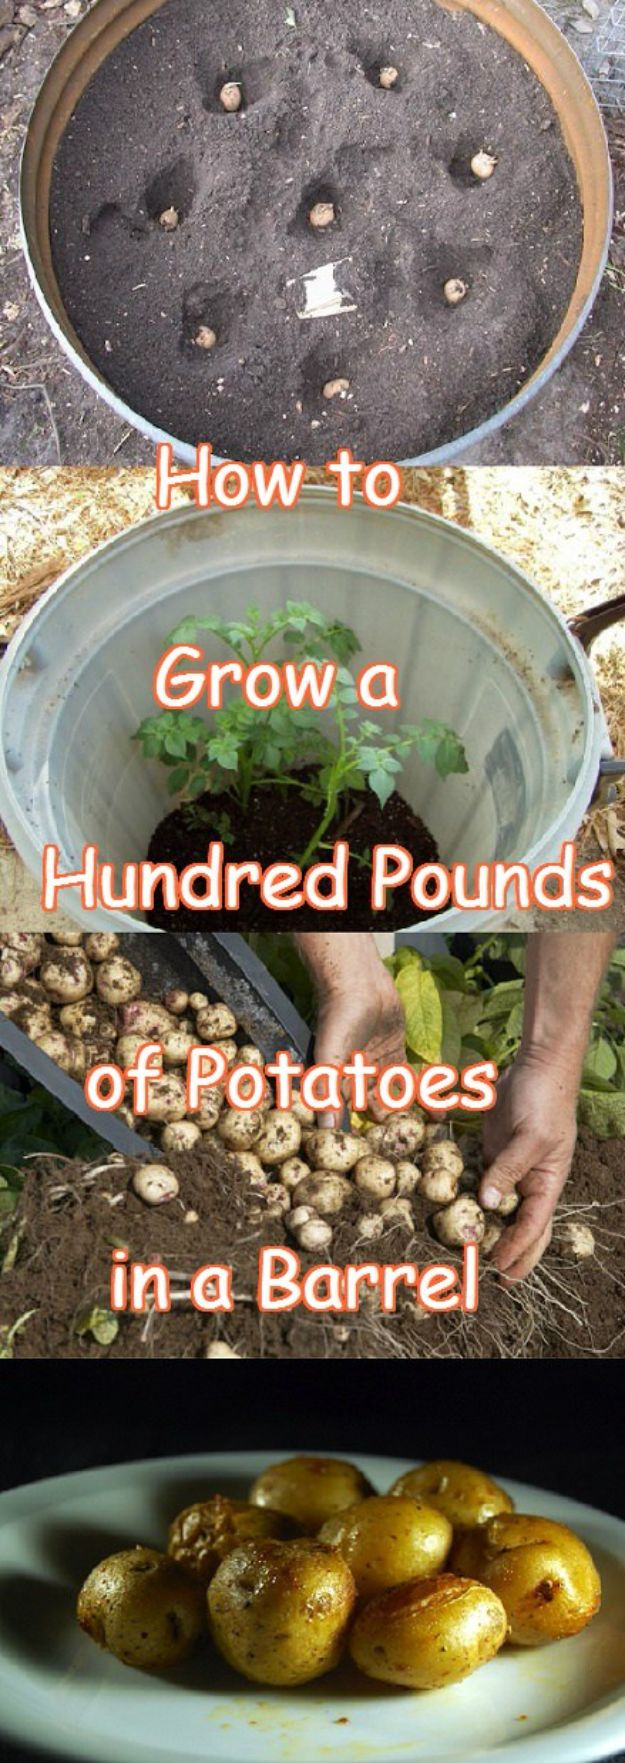 Container Gardening Ideas - Grow Potatoes In A Barrel - Easy Garden Projects for Containers and Growing Plants in Small Spaces - DIY Potting Tips and Planter Boxes for Vegetables, Herbs and Flowers - Simple Ideas for Beginners -Shade, Full Sun, Pation and Yard Landscape Idea tutorials